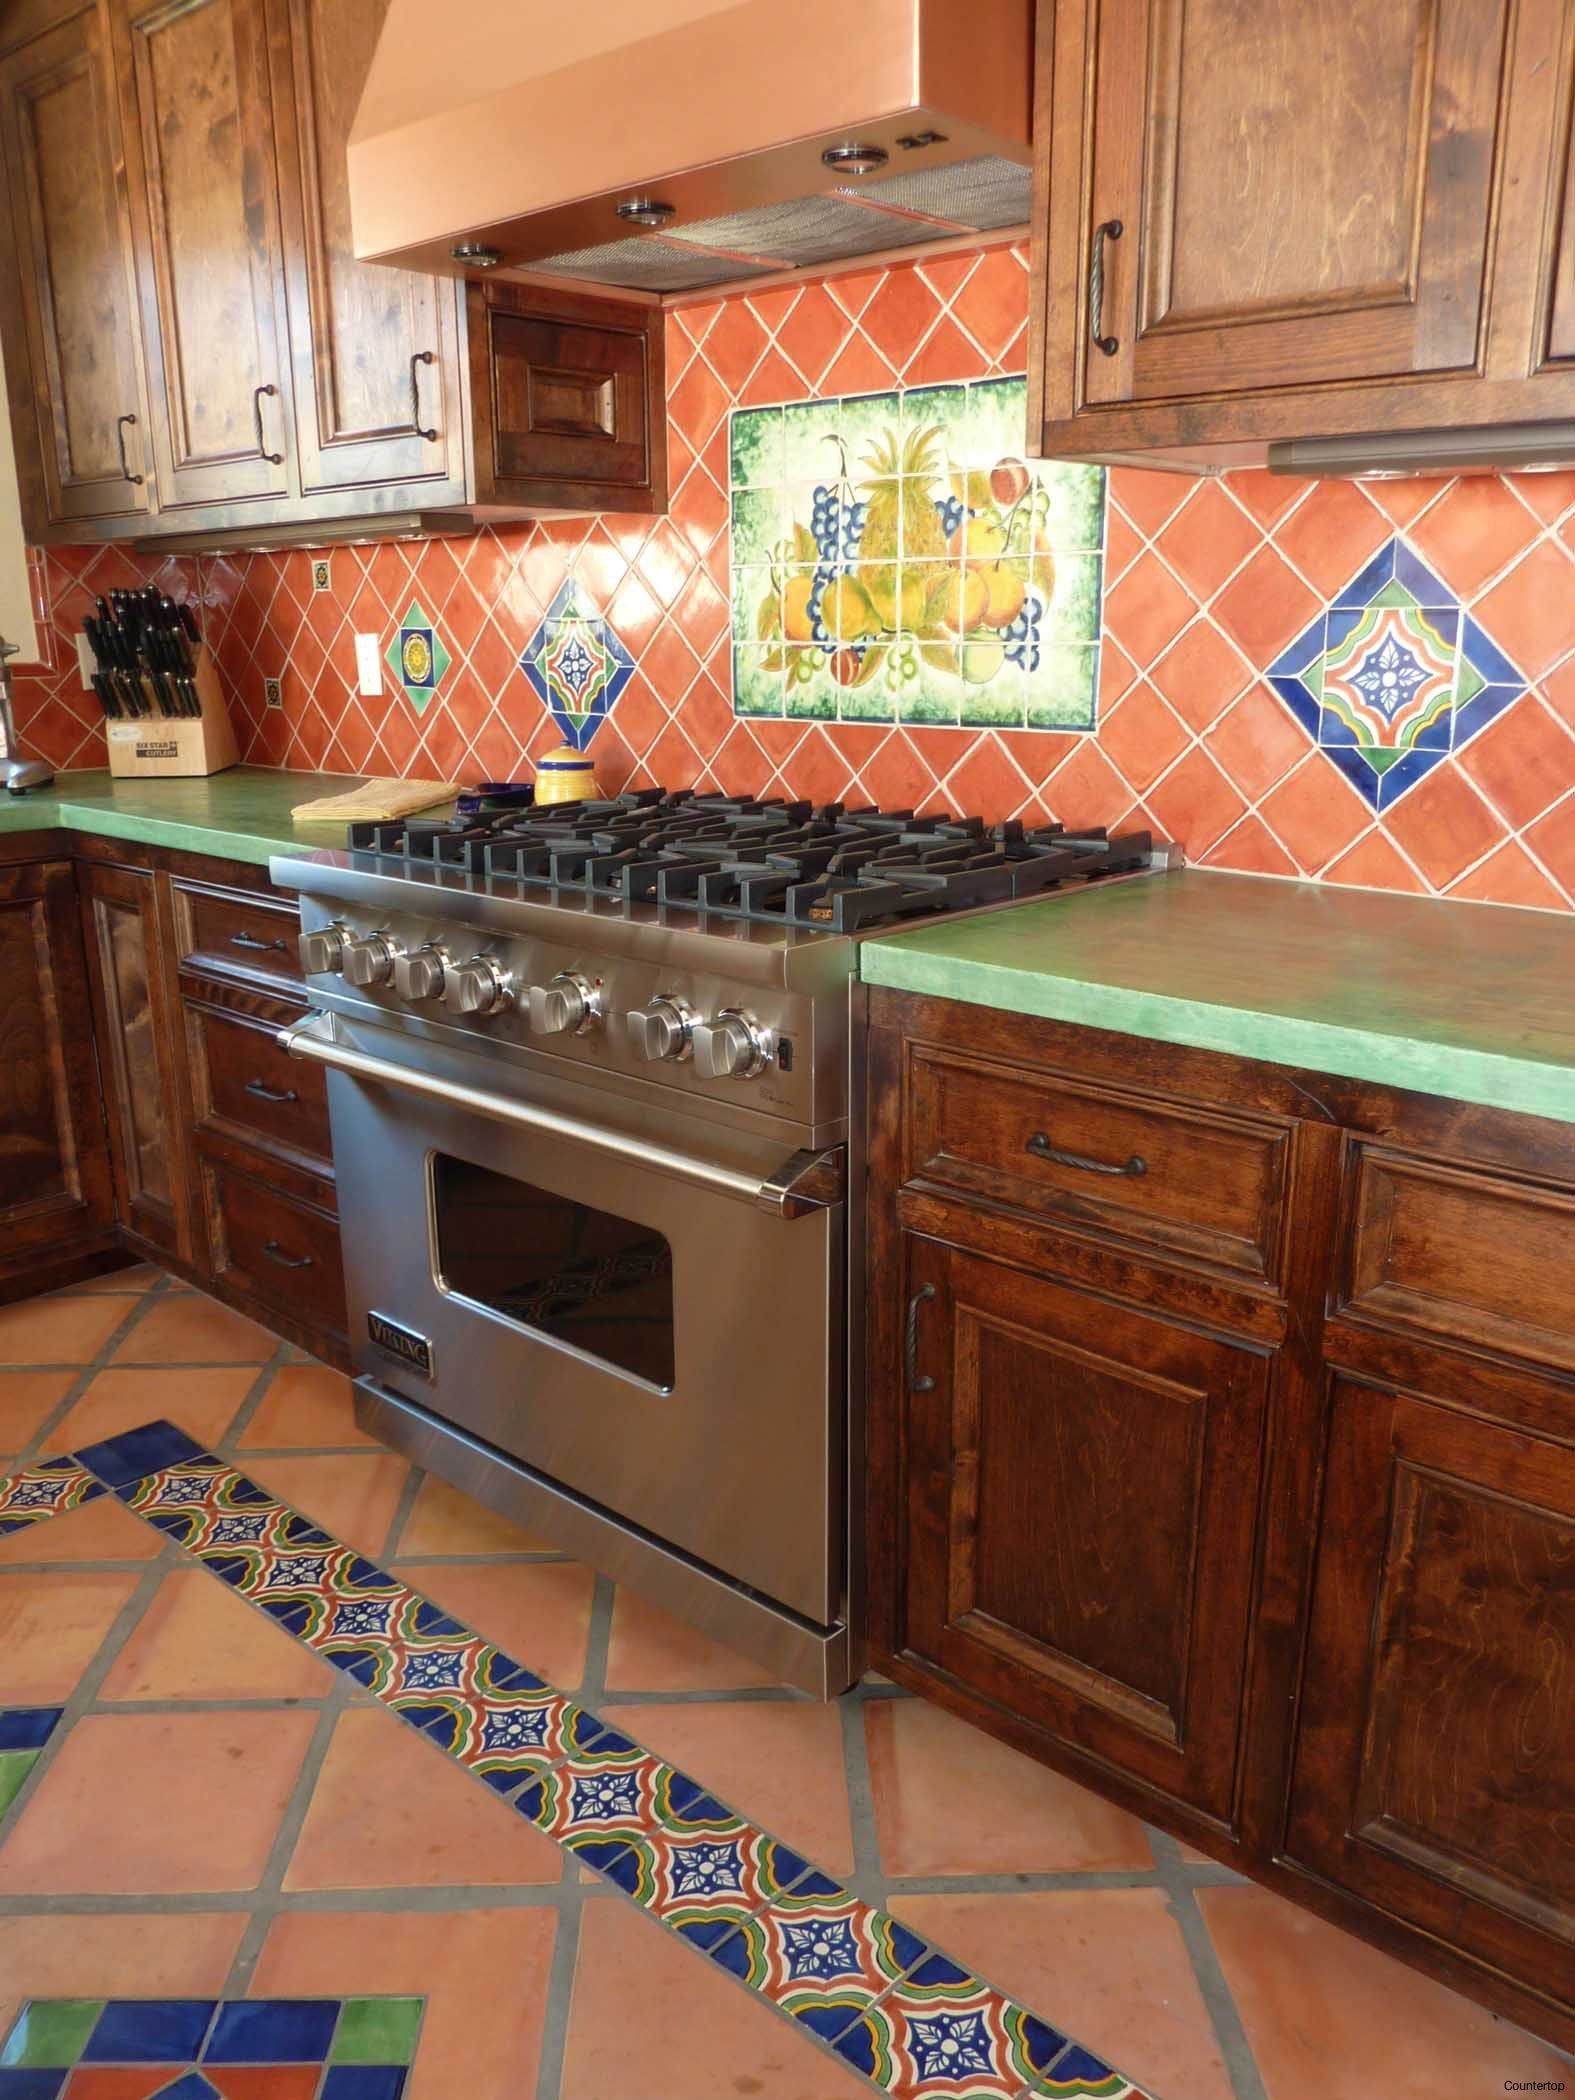 Slowings Com Nbspthis Website Is For Sale Nbspslowings Resources And Information Mexican Style Kitchens Spanish Style Kitchen Mexican Home Decor